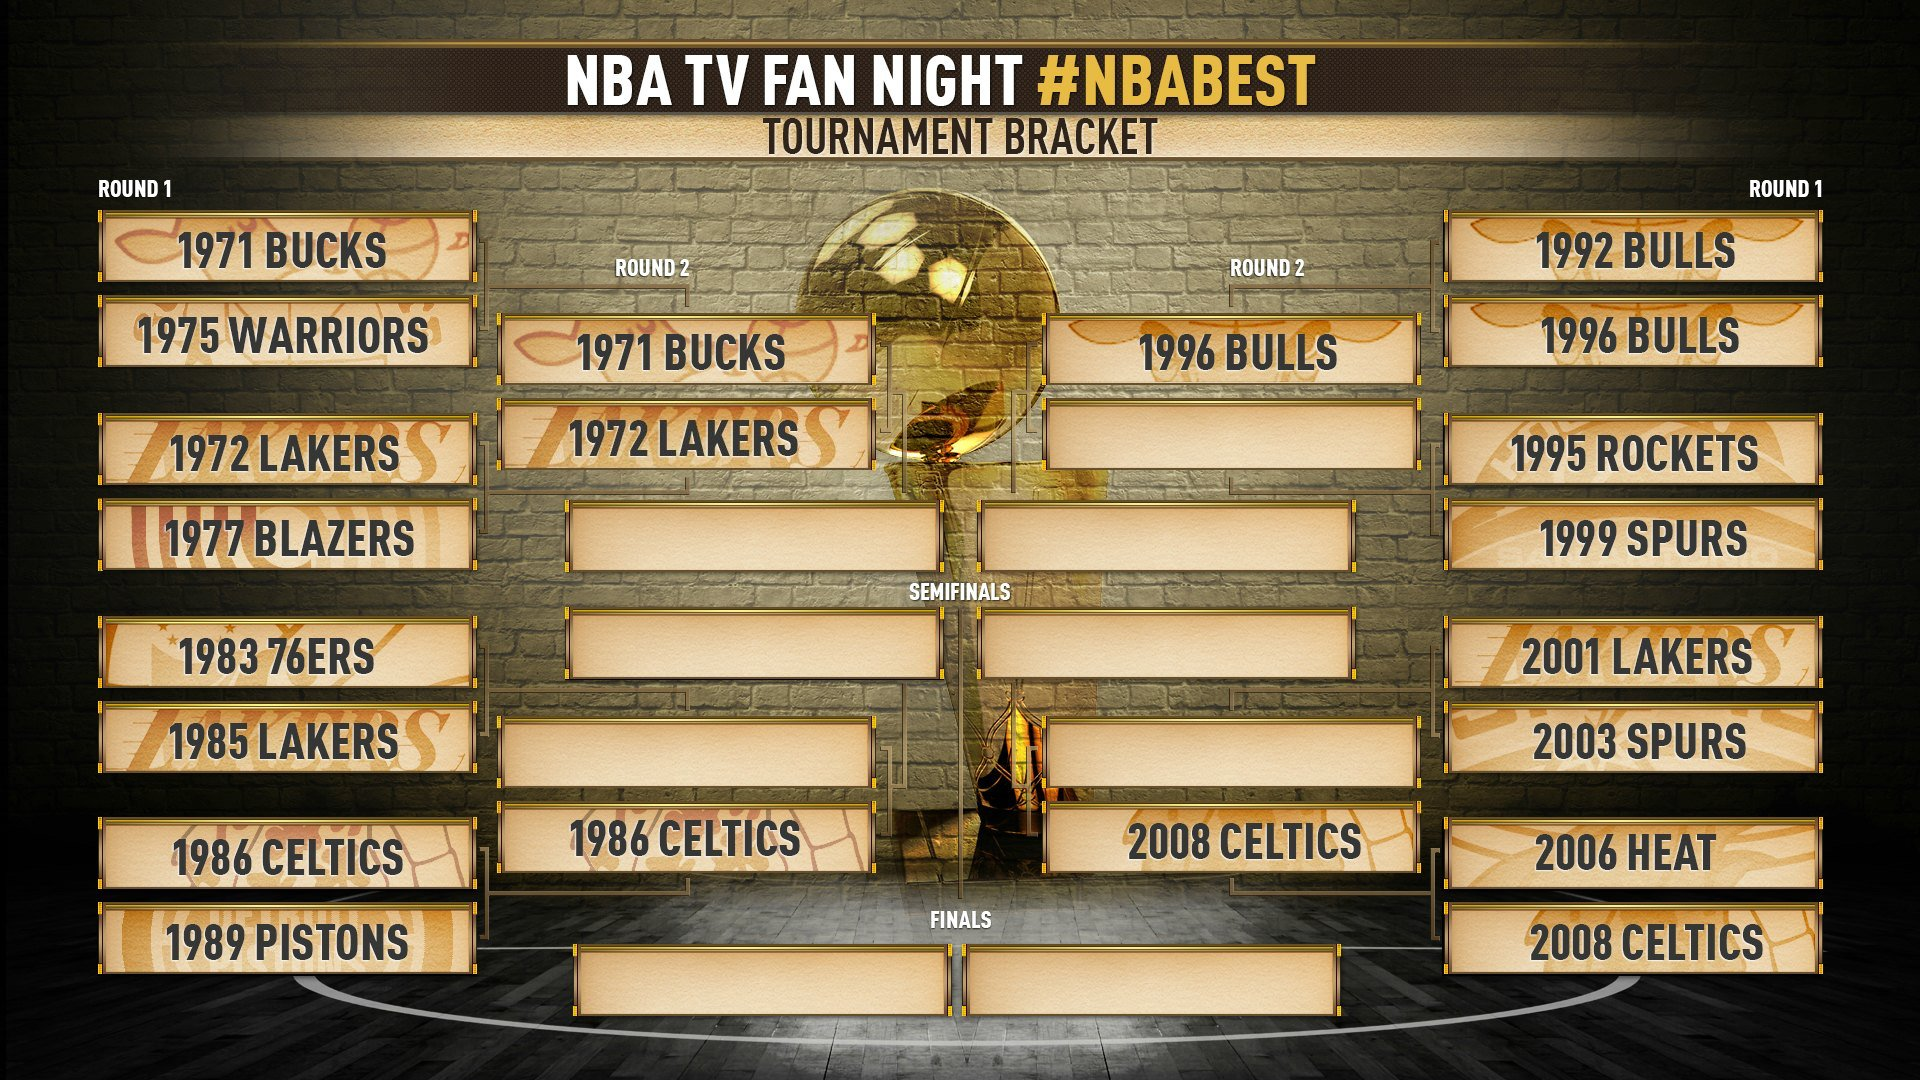 Nba Tv On Twitter Heres The Updated Nbabest Bracket Next